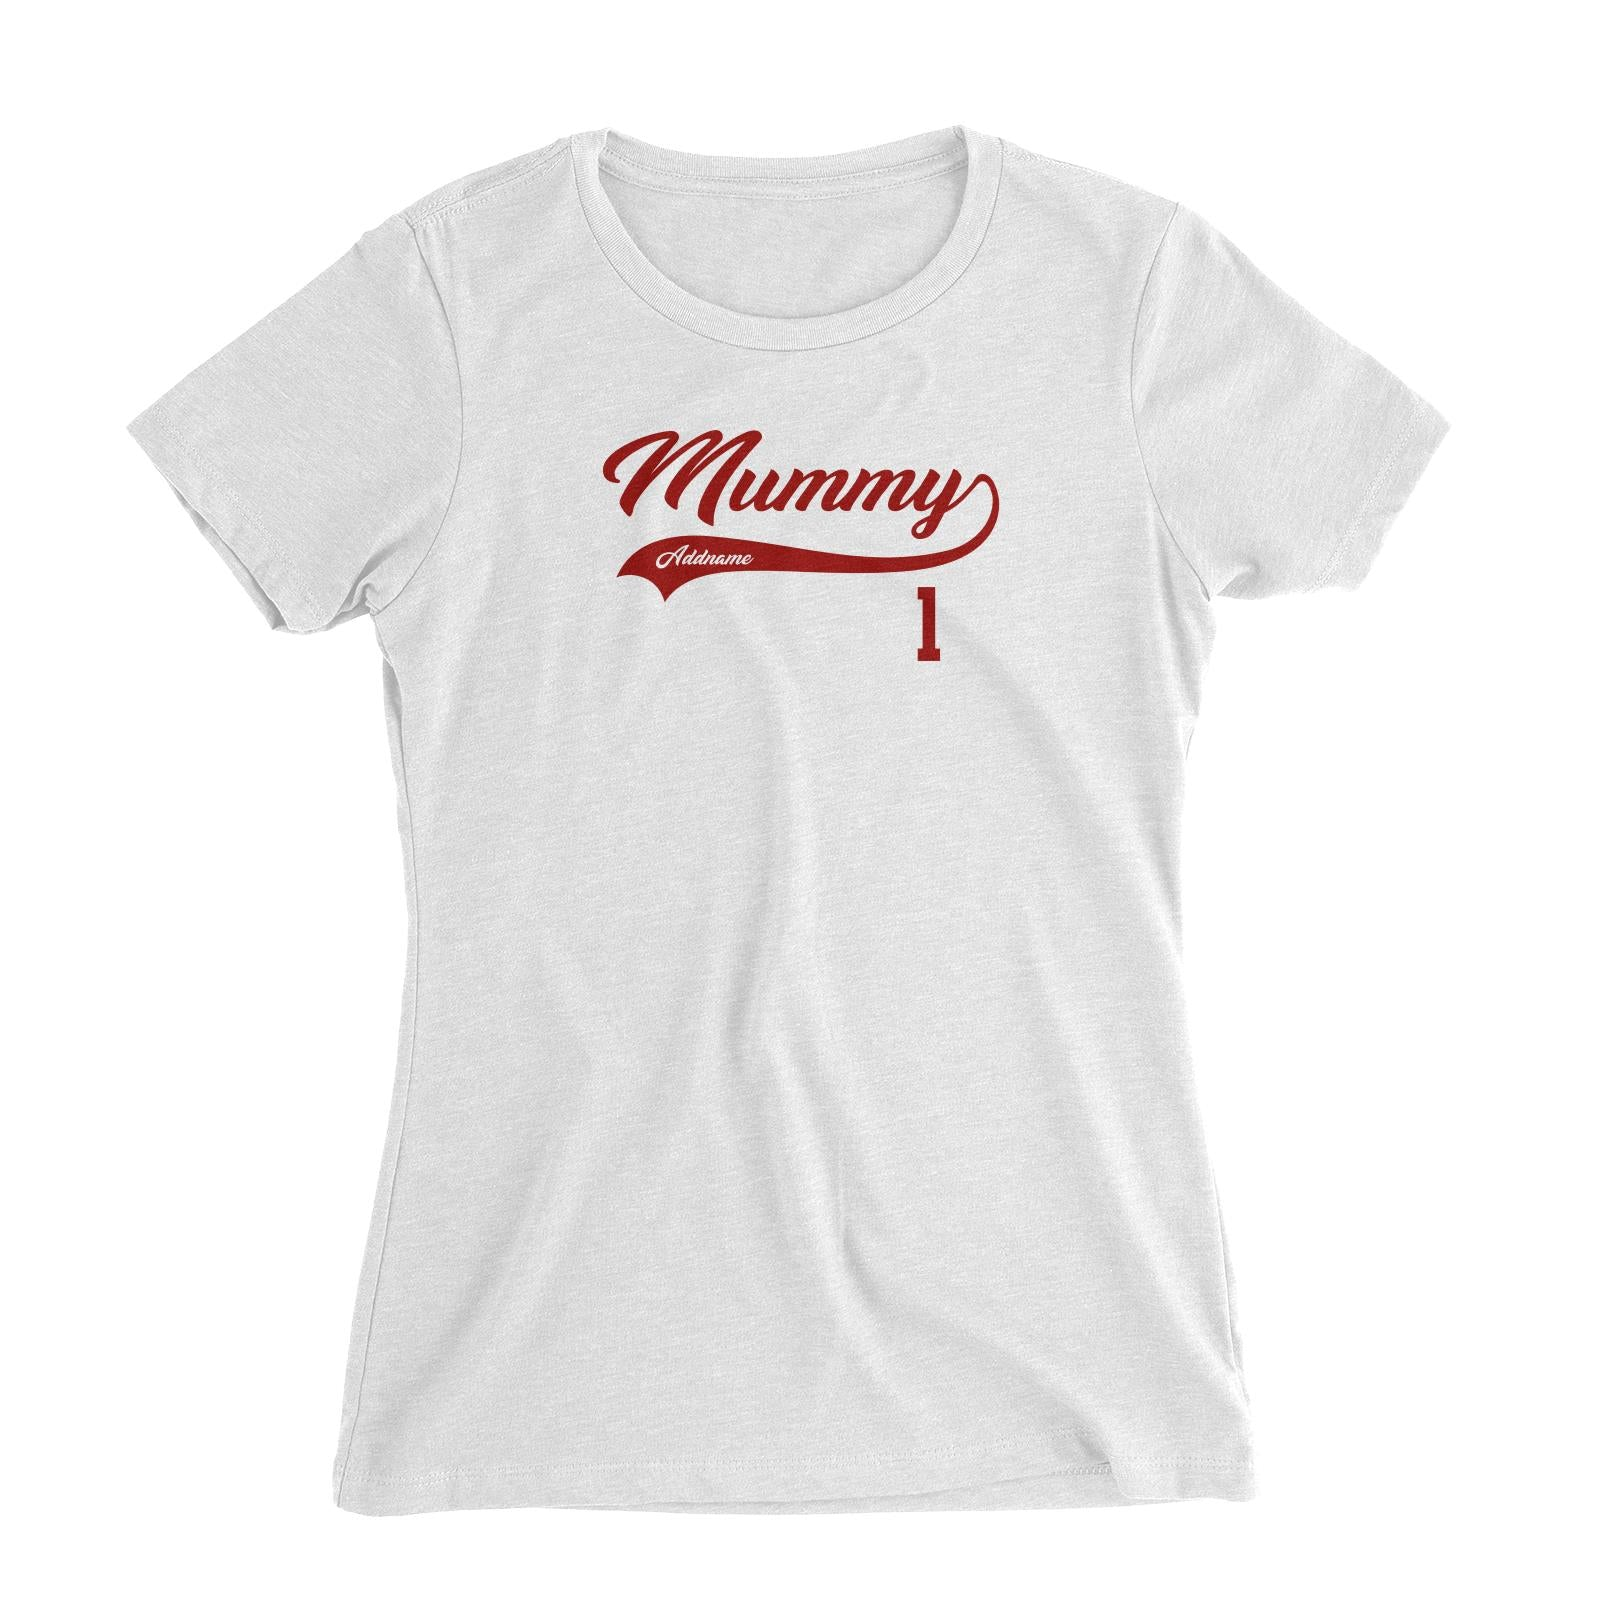 Mummy Retro No 1 Baseball Team Women's Slim Fit T-Shirt